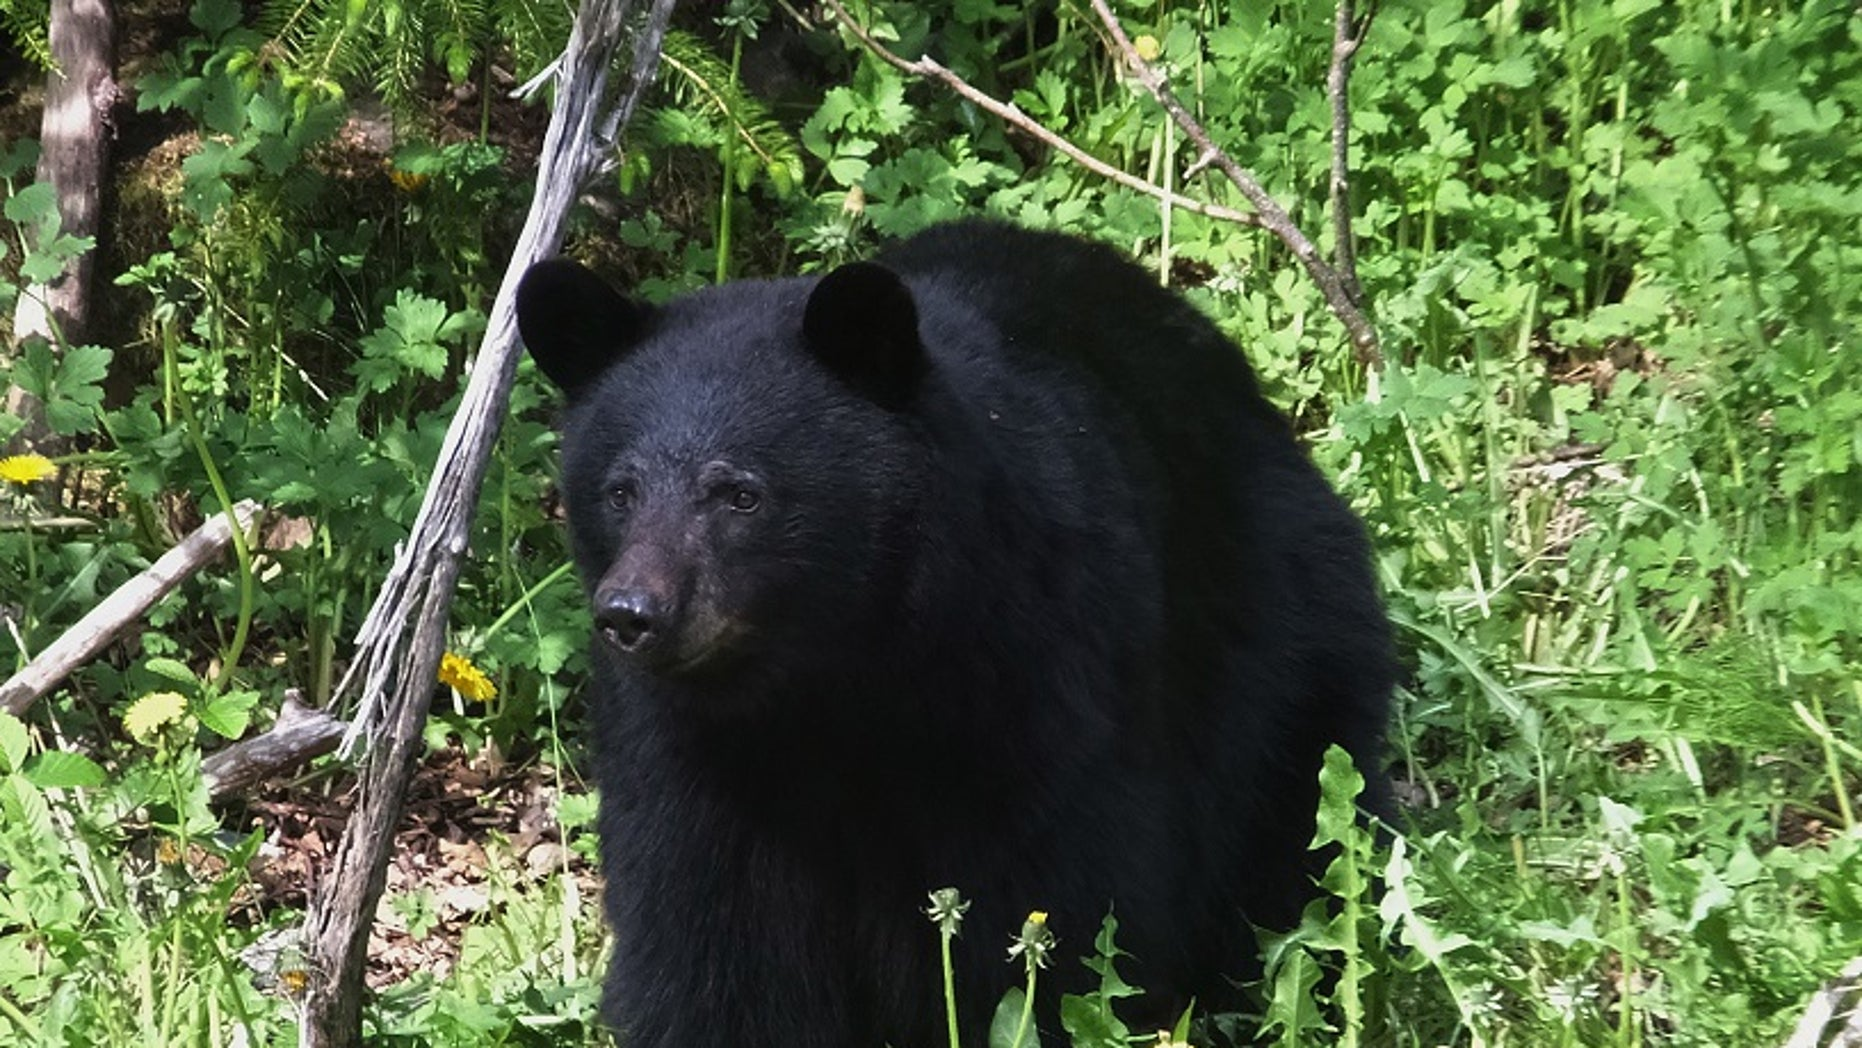 A 16-year-old boy was mauled to death by a black bear in Alaska on Sunday while running a mountain race, state troopers said.